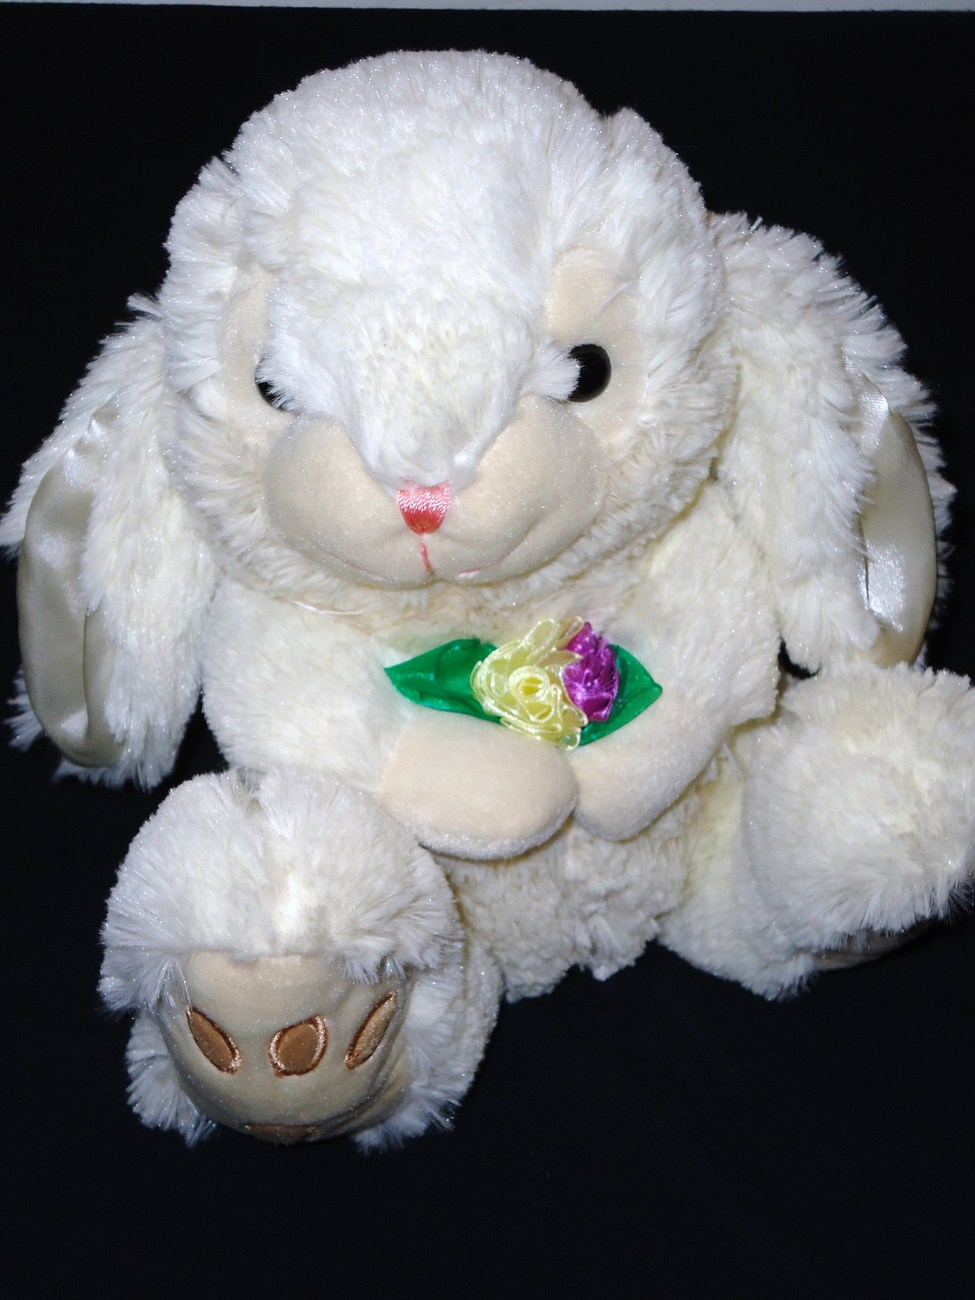 Goffa Easter Bunny Rabbit Holding Flowers Plush Stuffed Animal Big Feet White